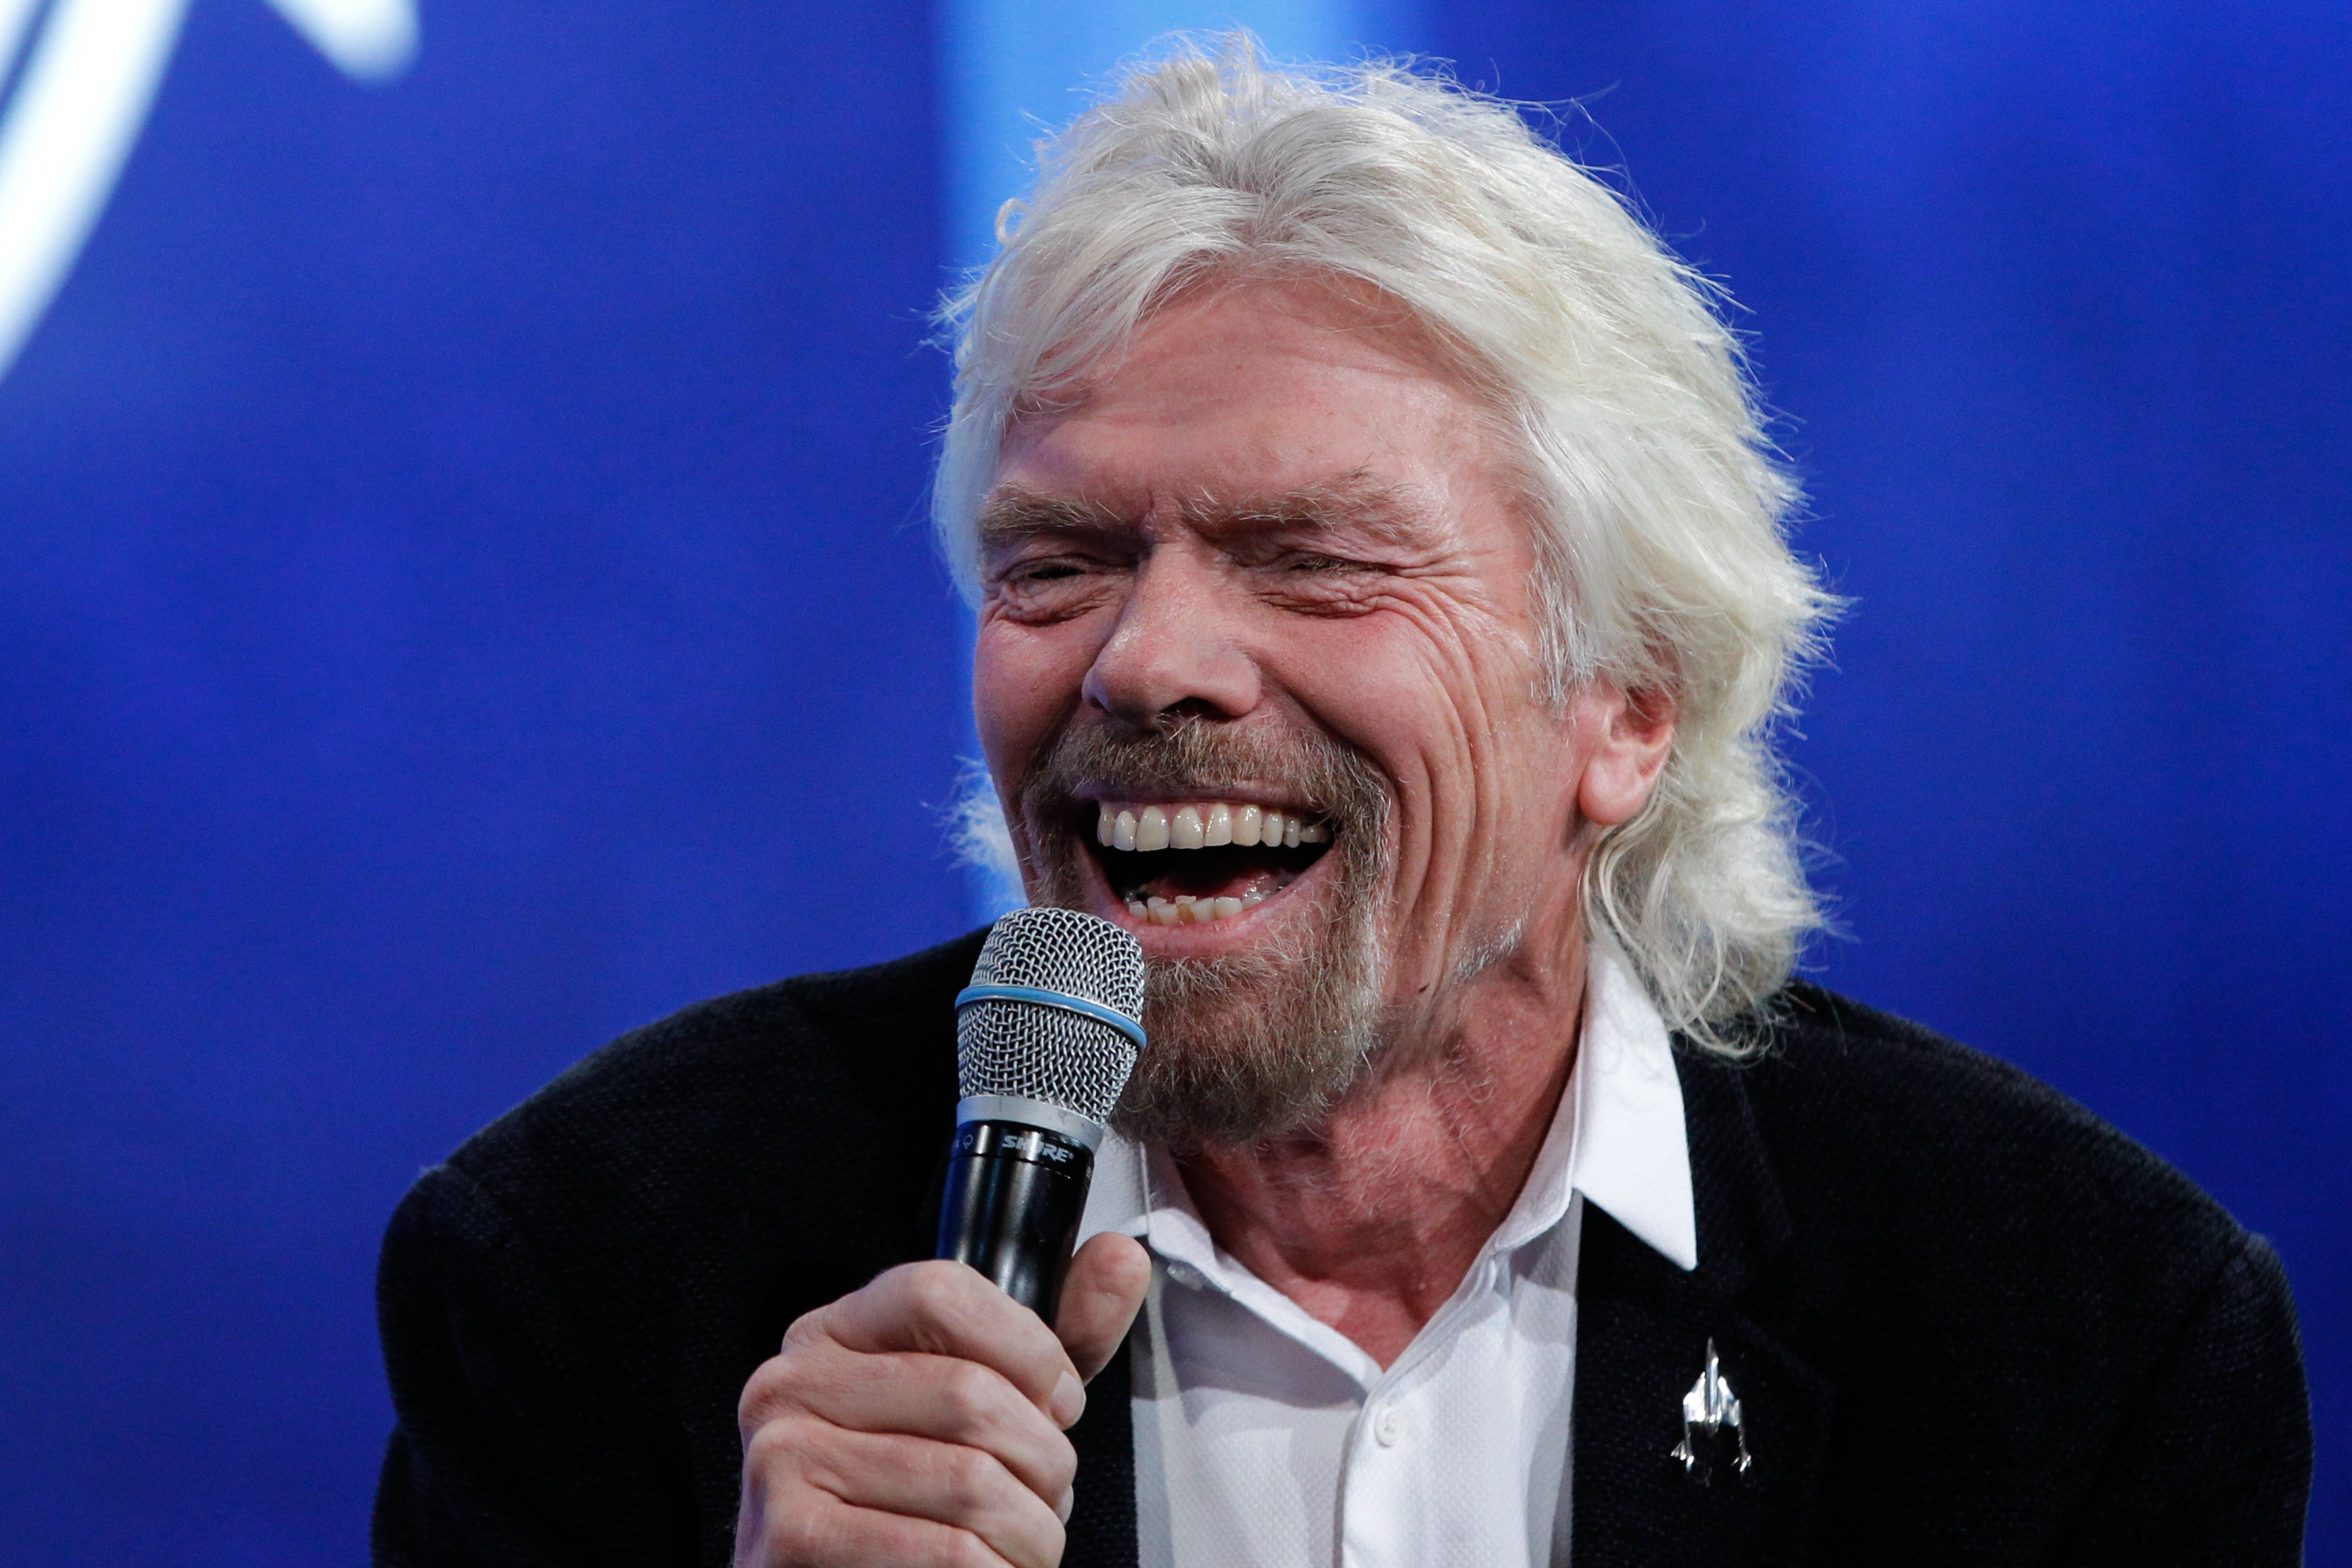 NEW YORK, NY - SEPTEMBER 28: Sir Richard Branson attends the Looking to the Next Frontier session during the third day of the 2015 Clinton Global Initiative's Annual Meeting at the Sheraton New York Hotel & Towers on September 28, 2015 in New York City. (Photo by JP Yim/Getty Images)